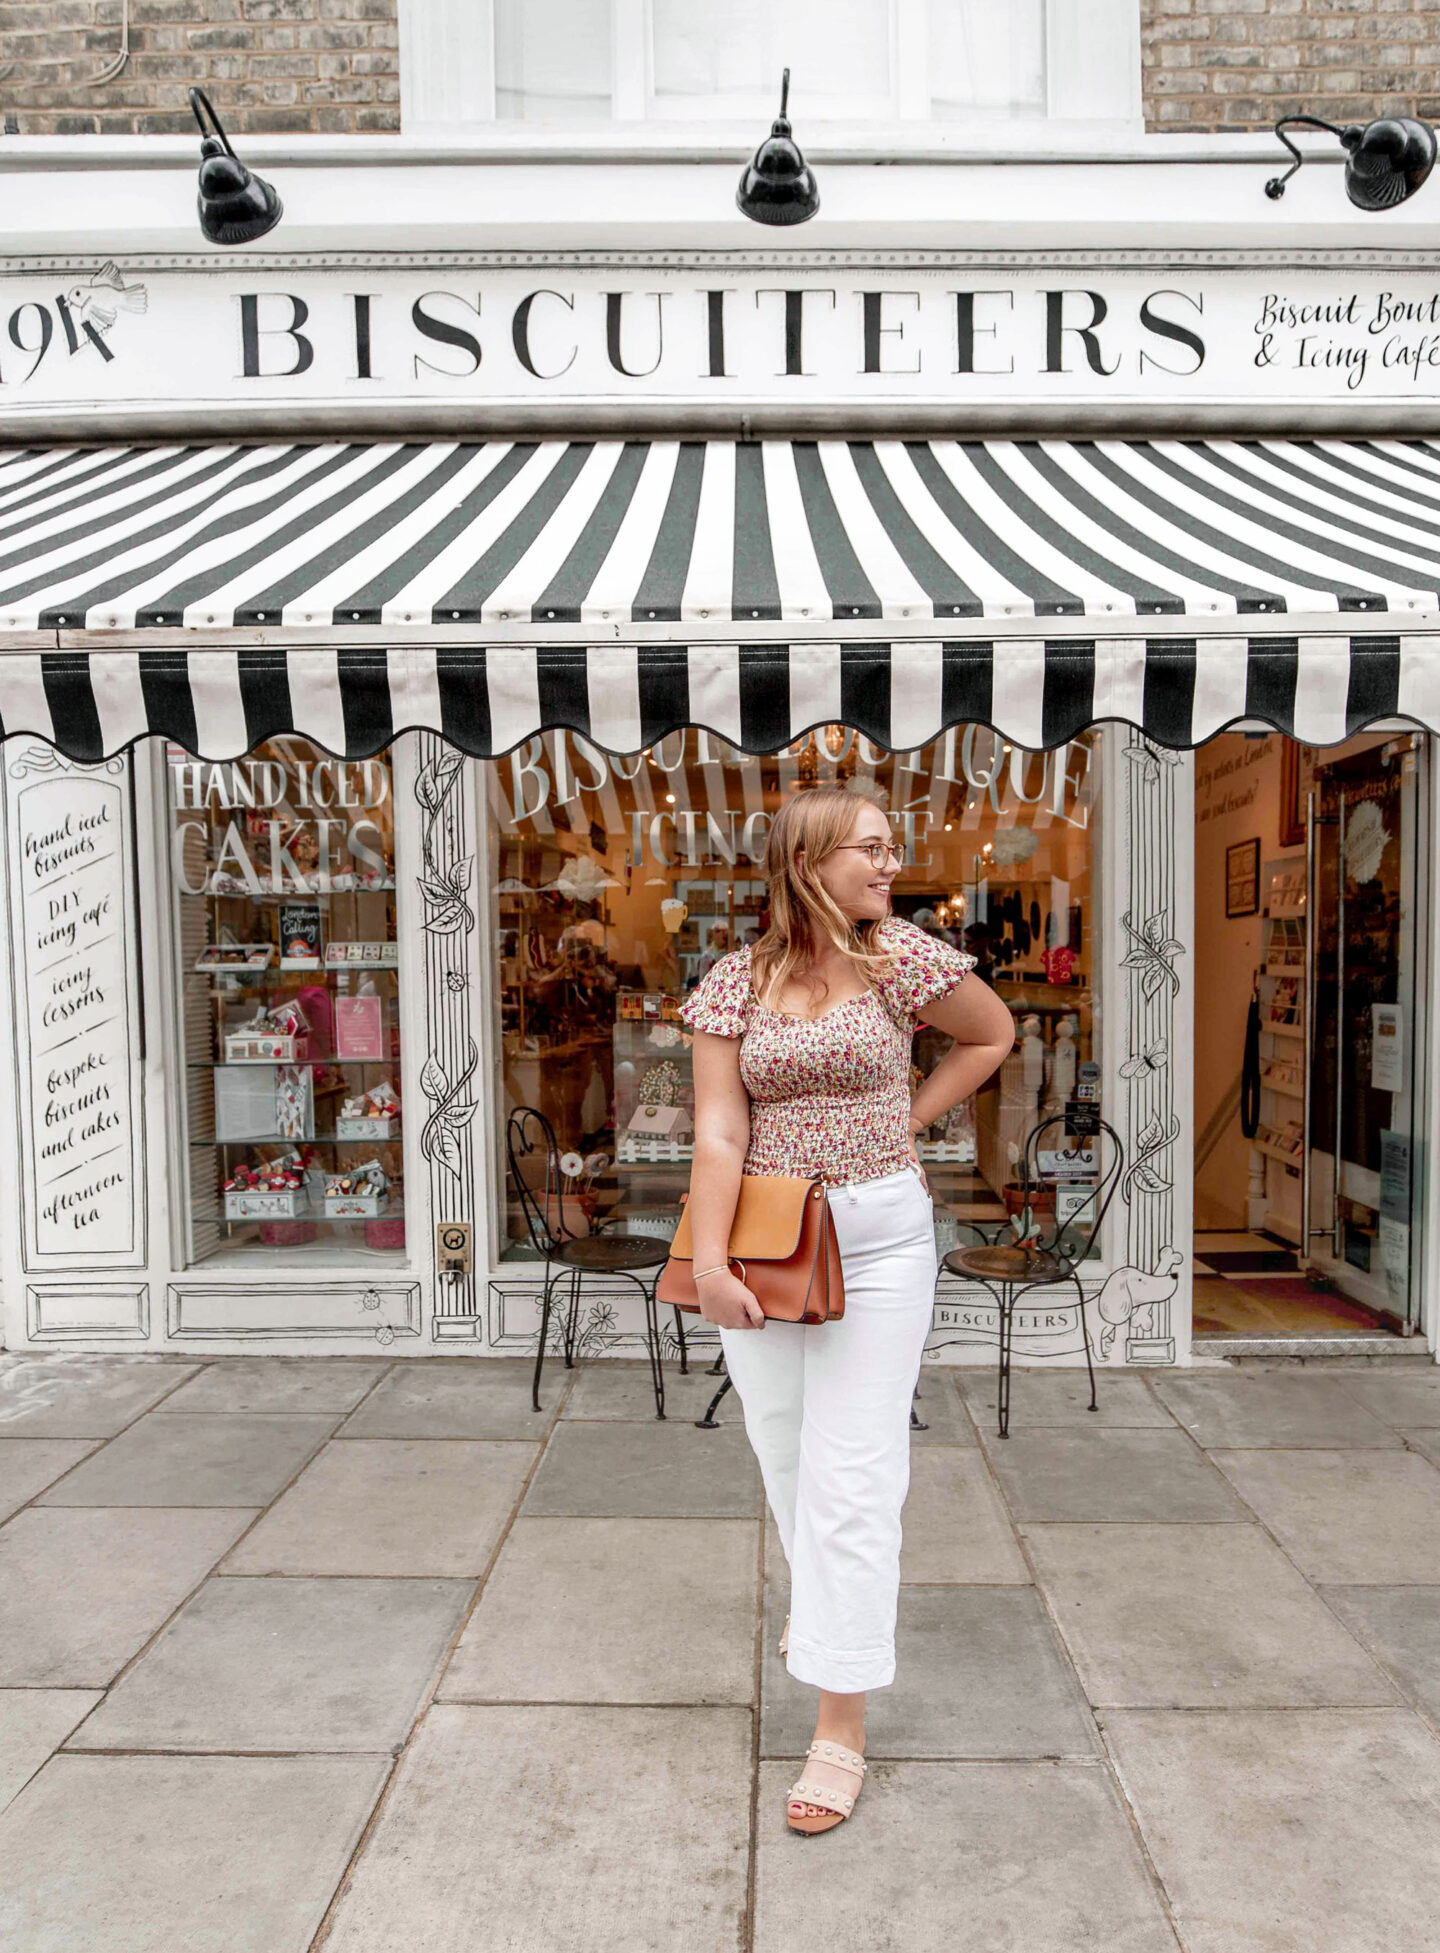 kelseyinlondon kelsey heinrichs london instagram spots notting hill guide adobe biscuiteers biscuit boutique and icing cafe